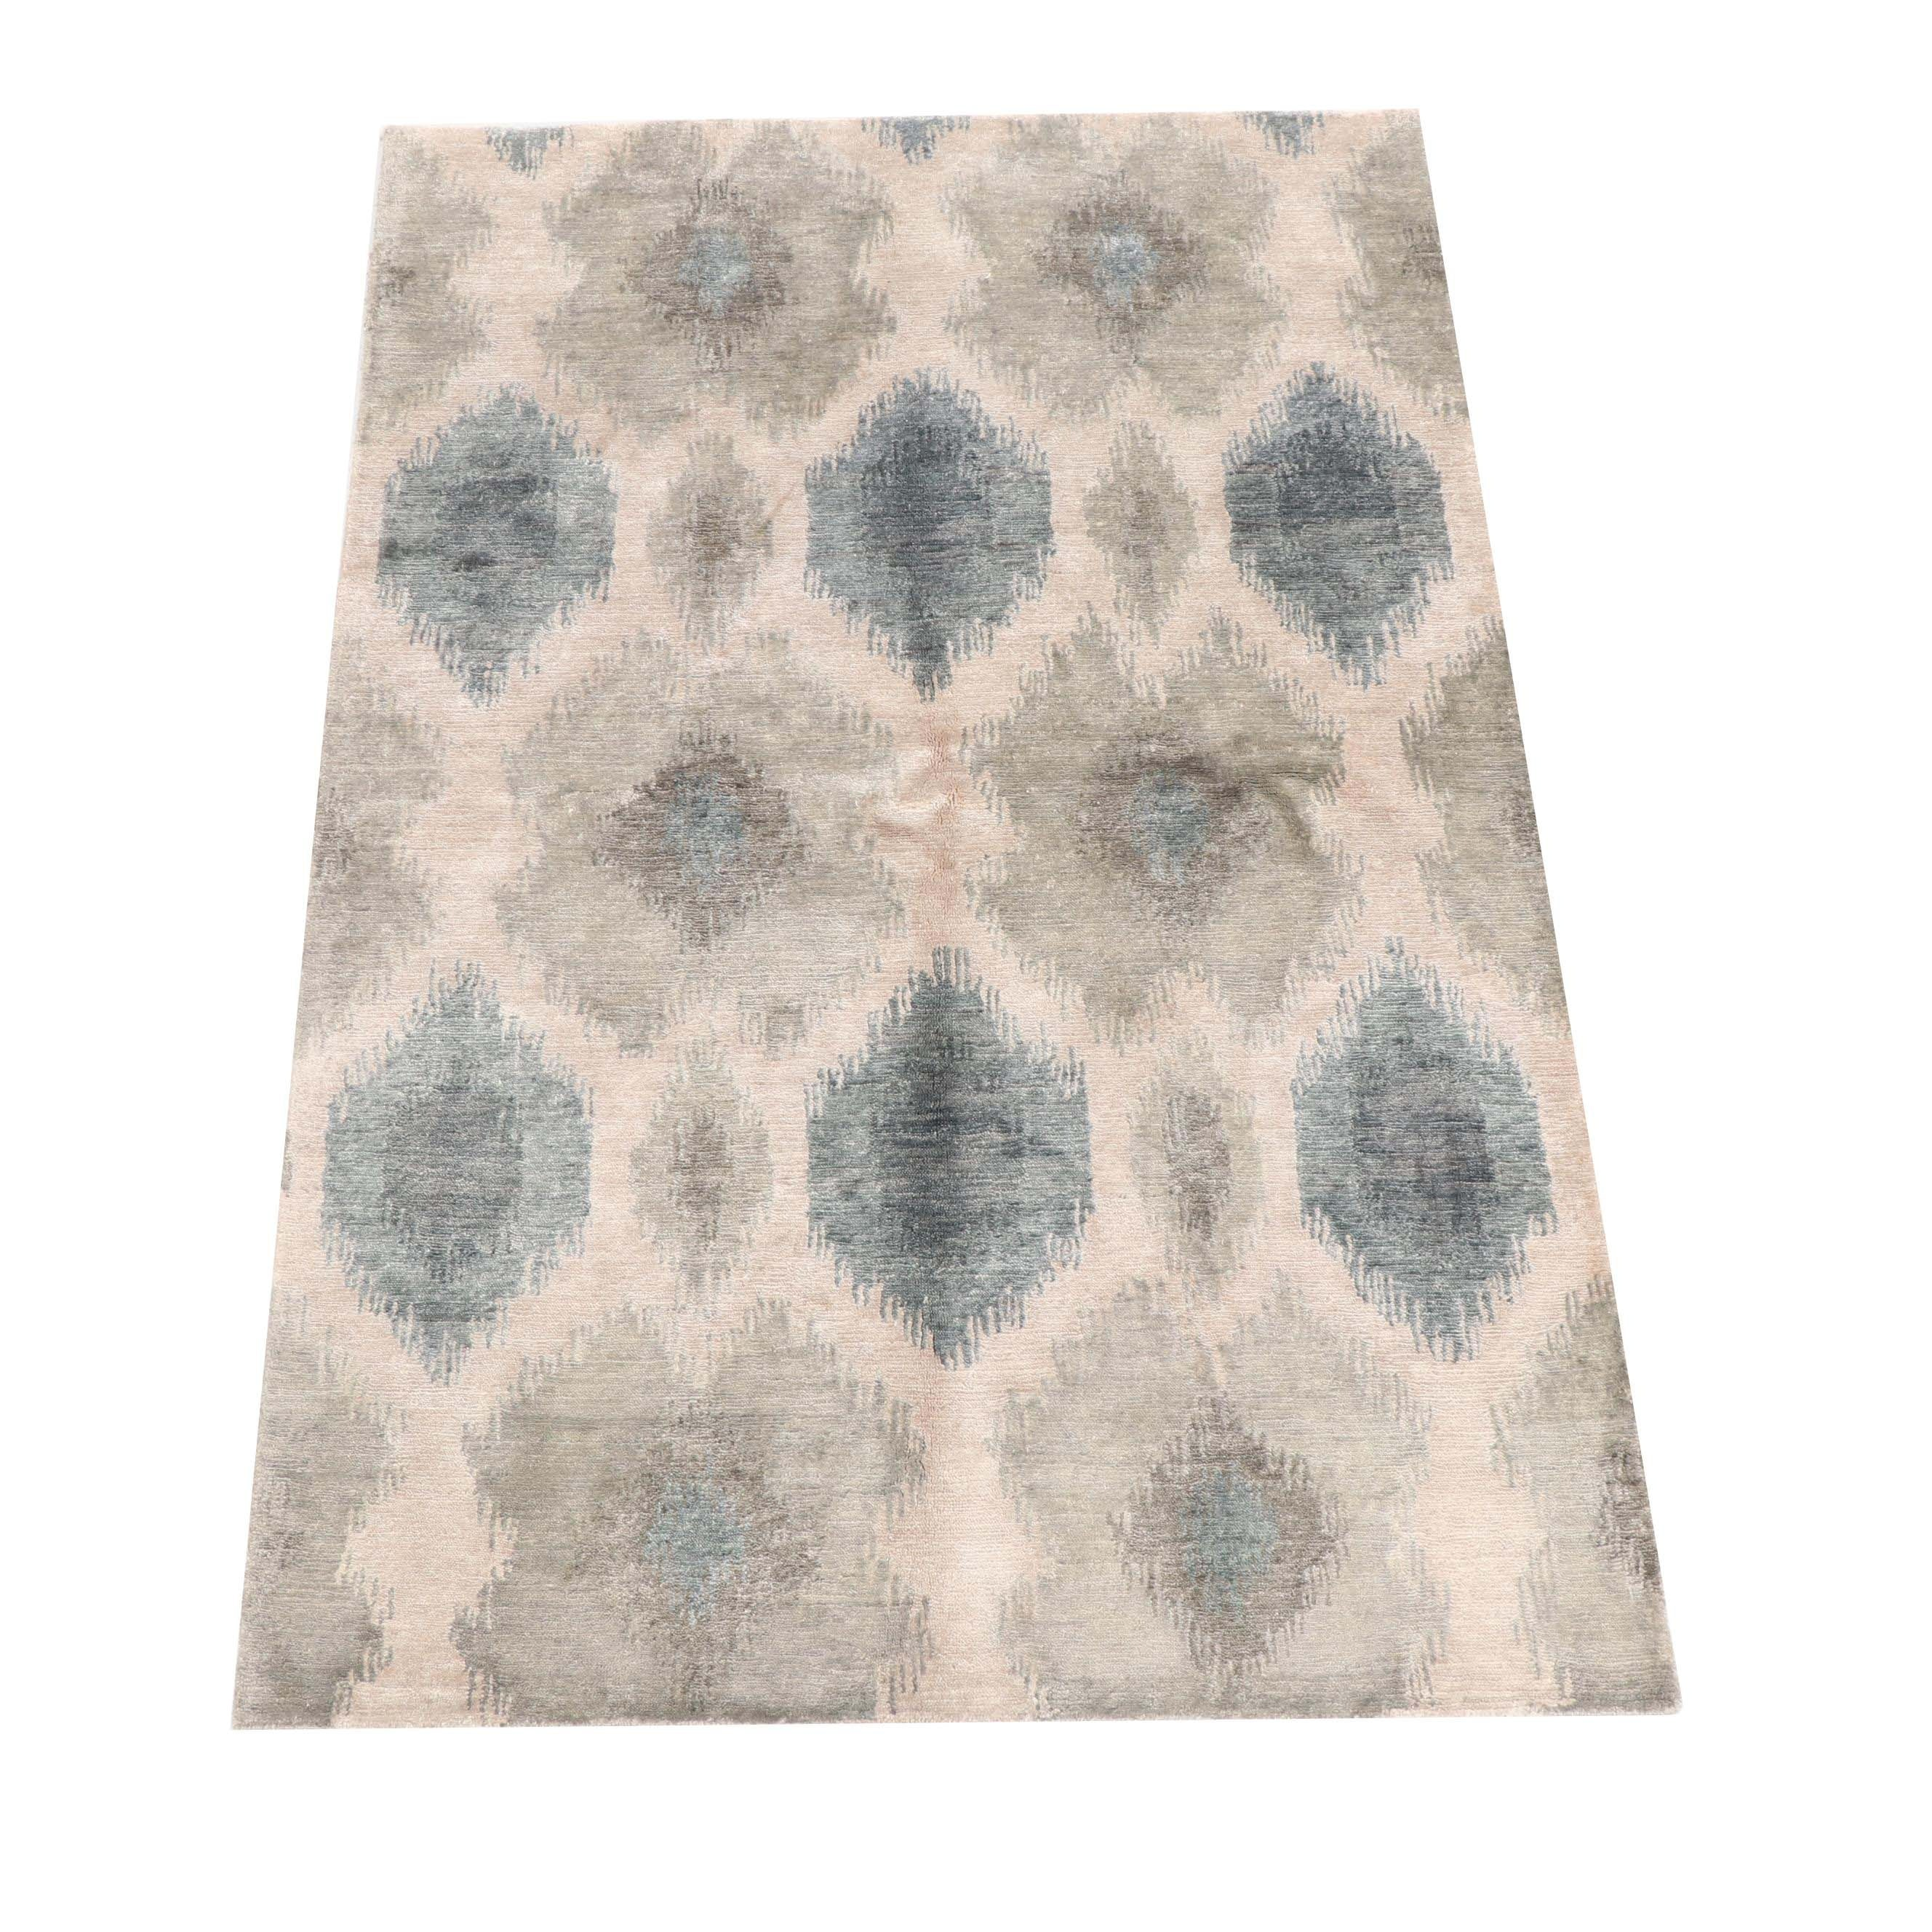 Hand-Knotted Nepalese Ikat Patterned Tibetan Wool Rug